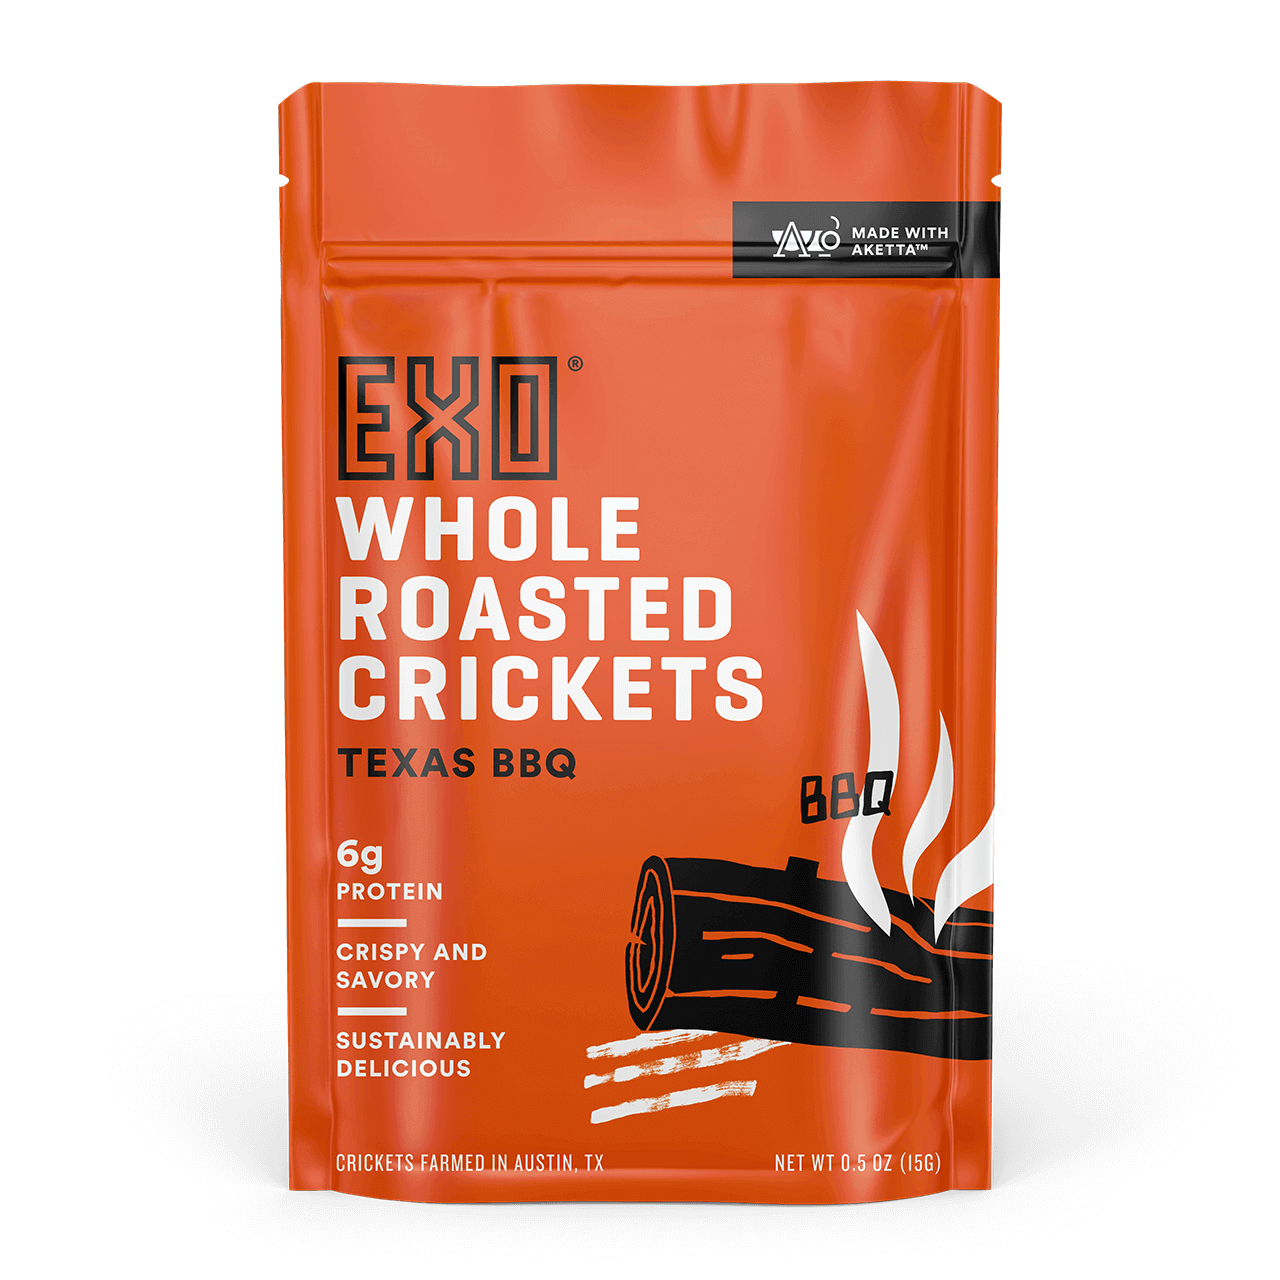 Texas BBQ Roasted Crickets - Texas BBQ Roasted Crickets